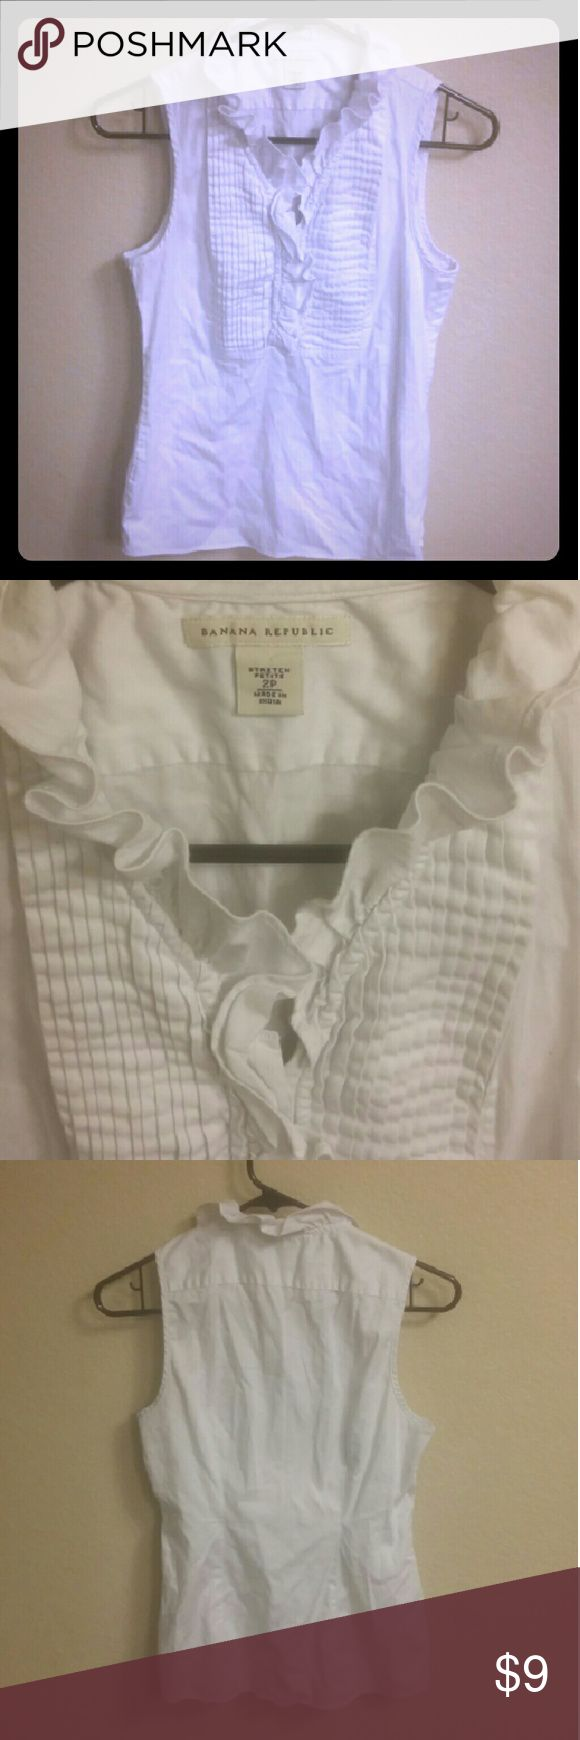 Banana Republic White Blouse Banana Republic White Blouse. Good condition. No stains. Great Blouse to wear to the office. Banana Republic Tops Blouses